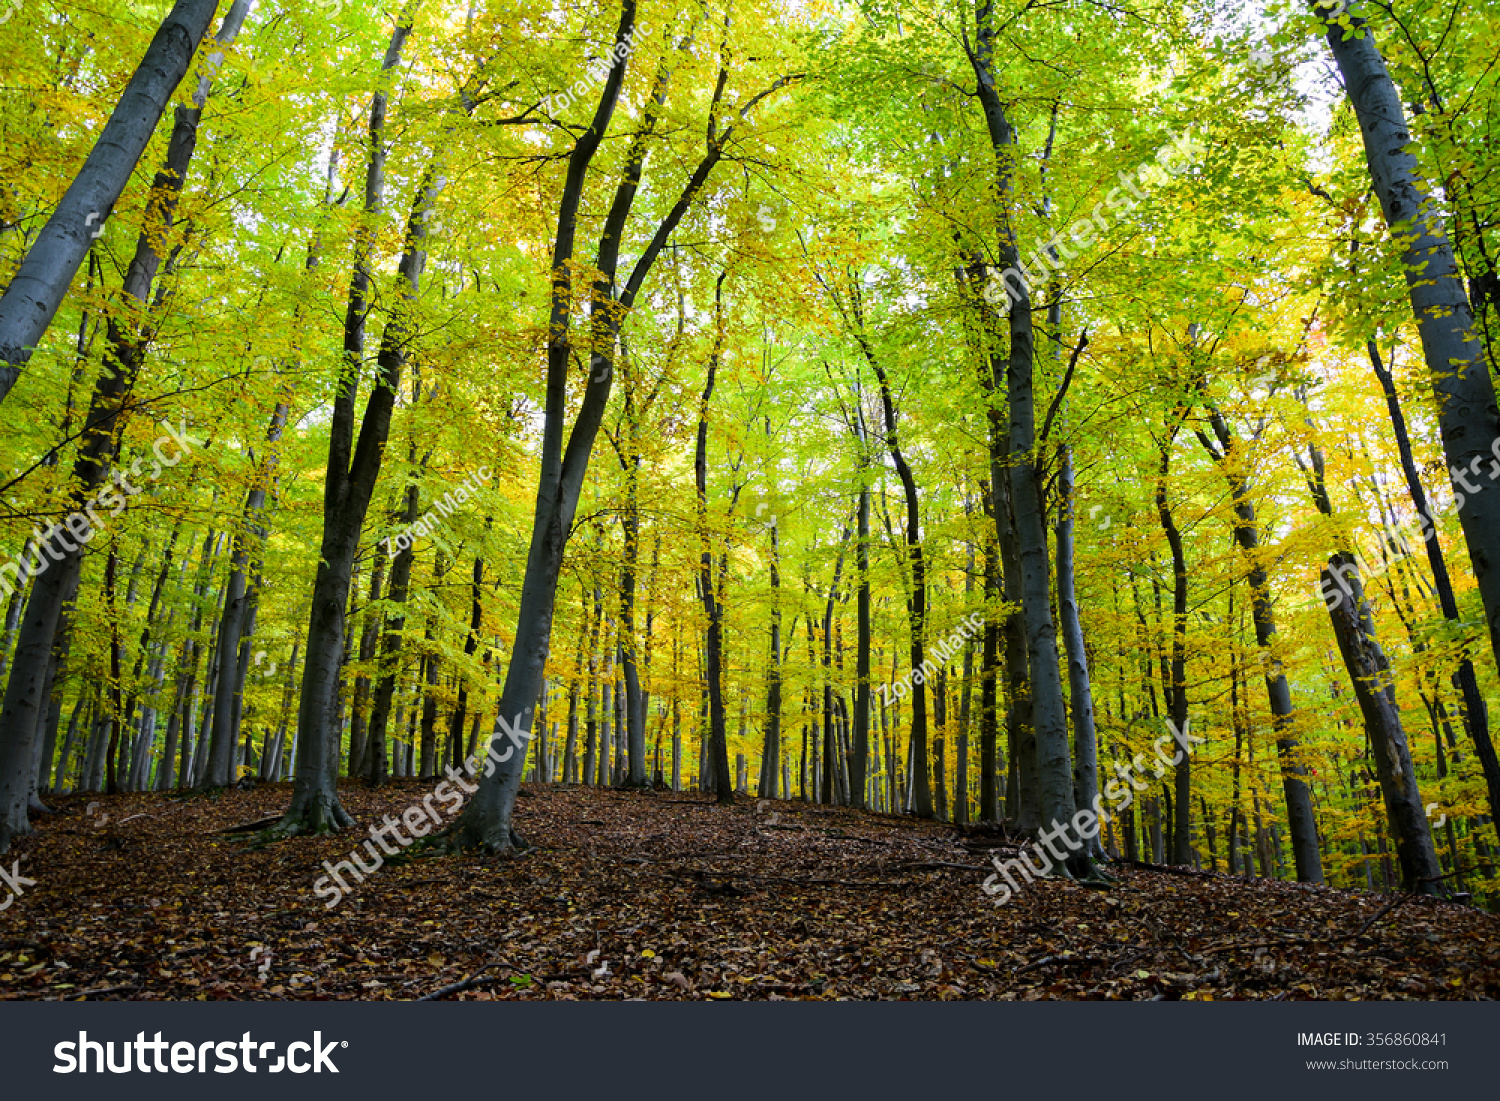 Autumn Autumn Landscape Trees Colorful Mode Stock Photo (Royalty ...